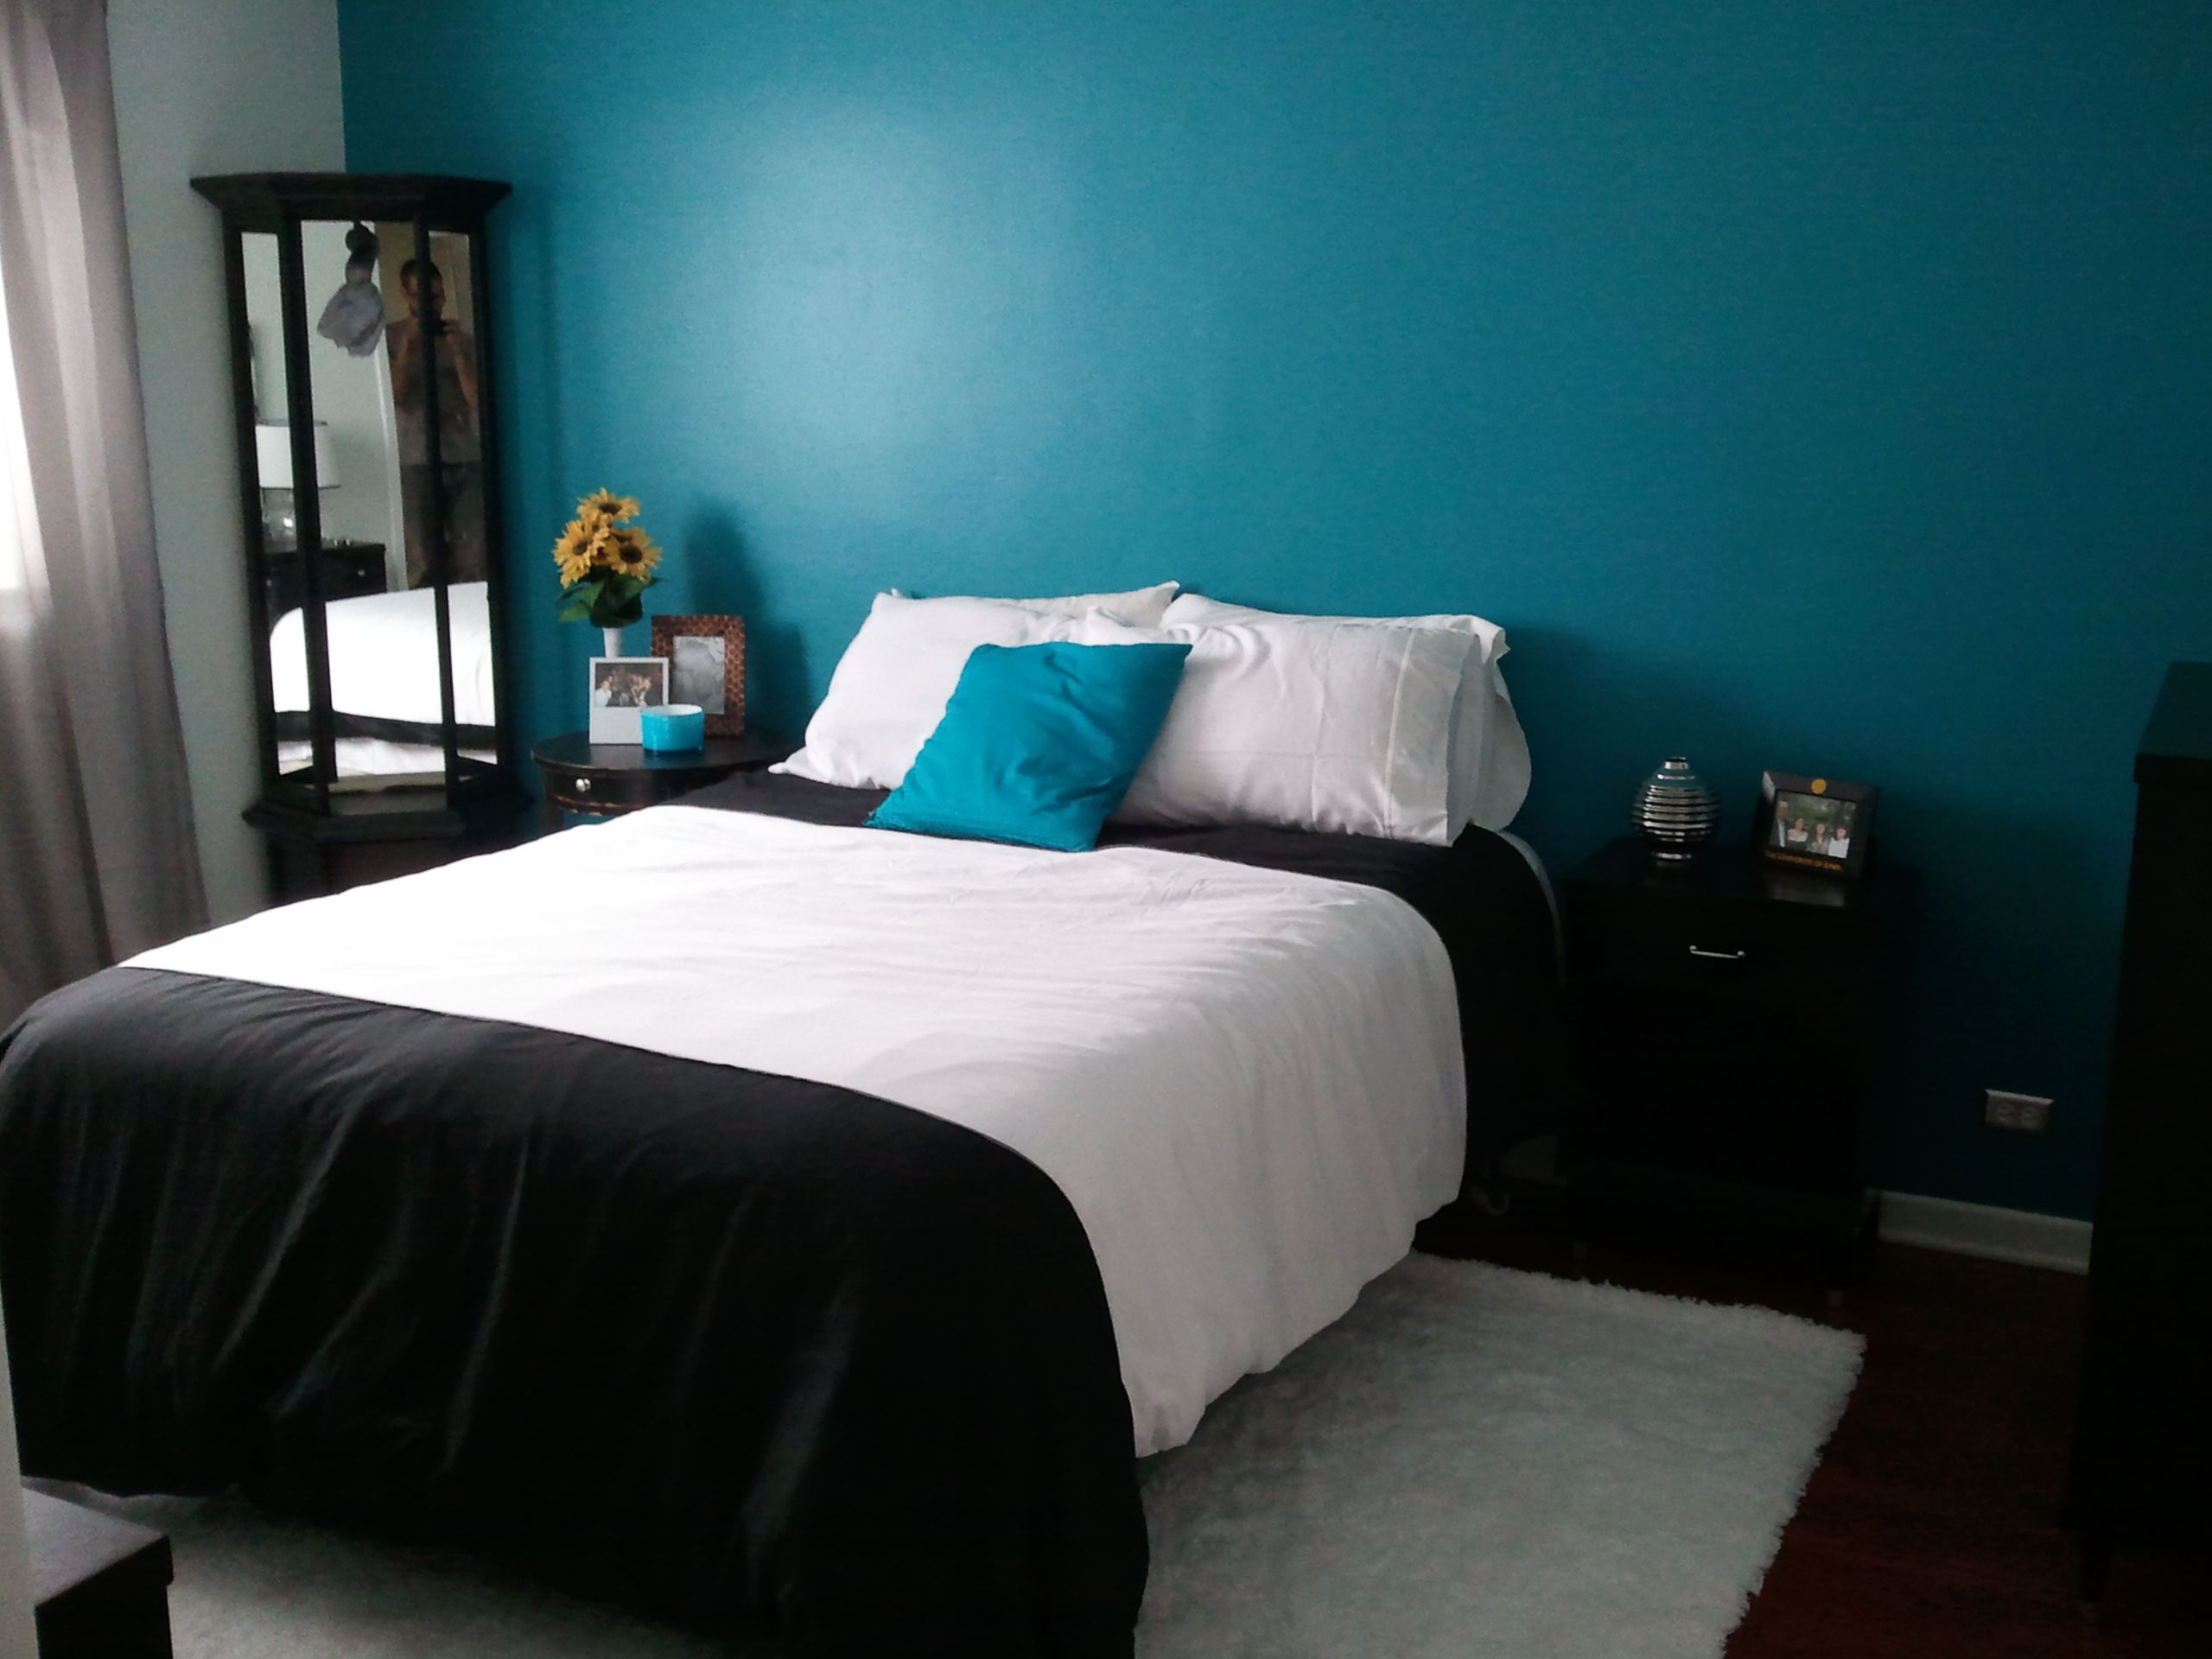 10 Brilliant Turquoise Room Ideas To Freshen Up Your Home Teal Bedroom Decor Grey Bedroom Design Teal Bedroom